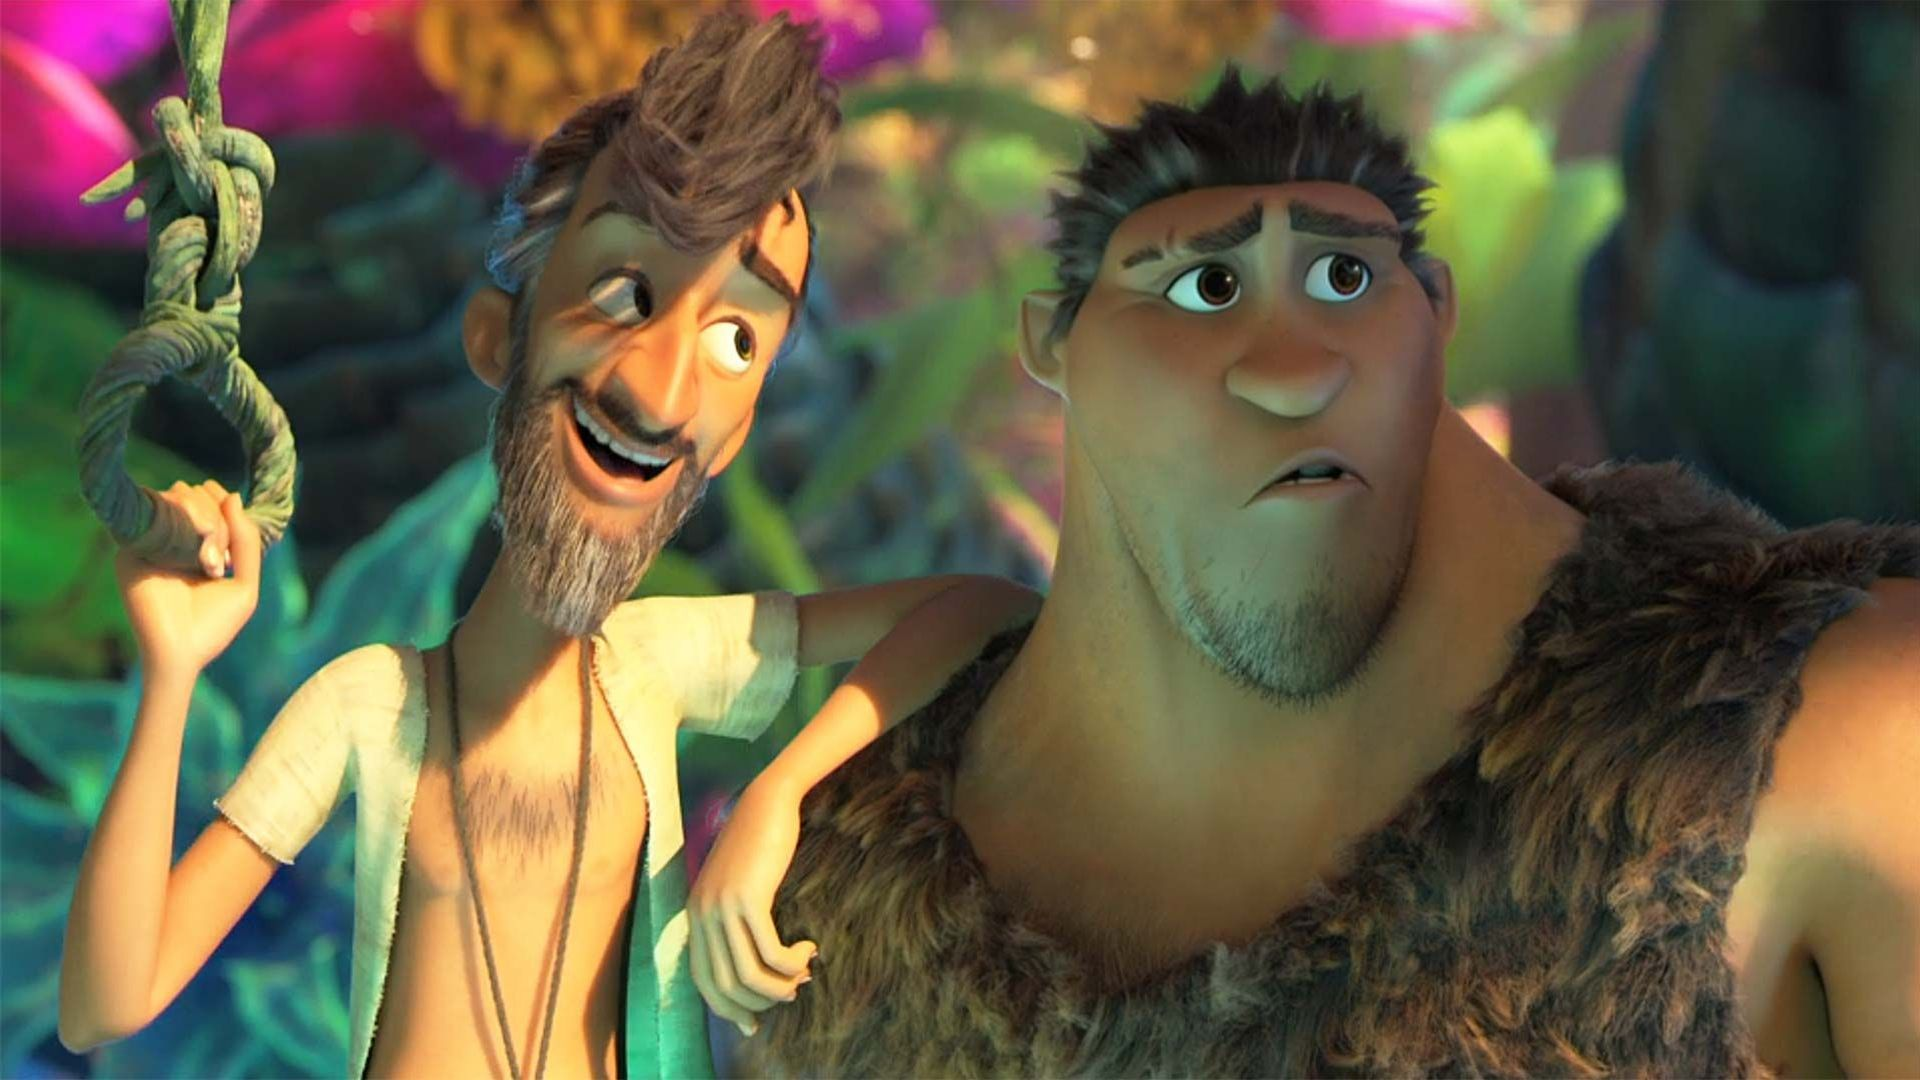 Still from 'The Croods: The New Age'